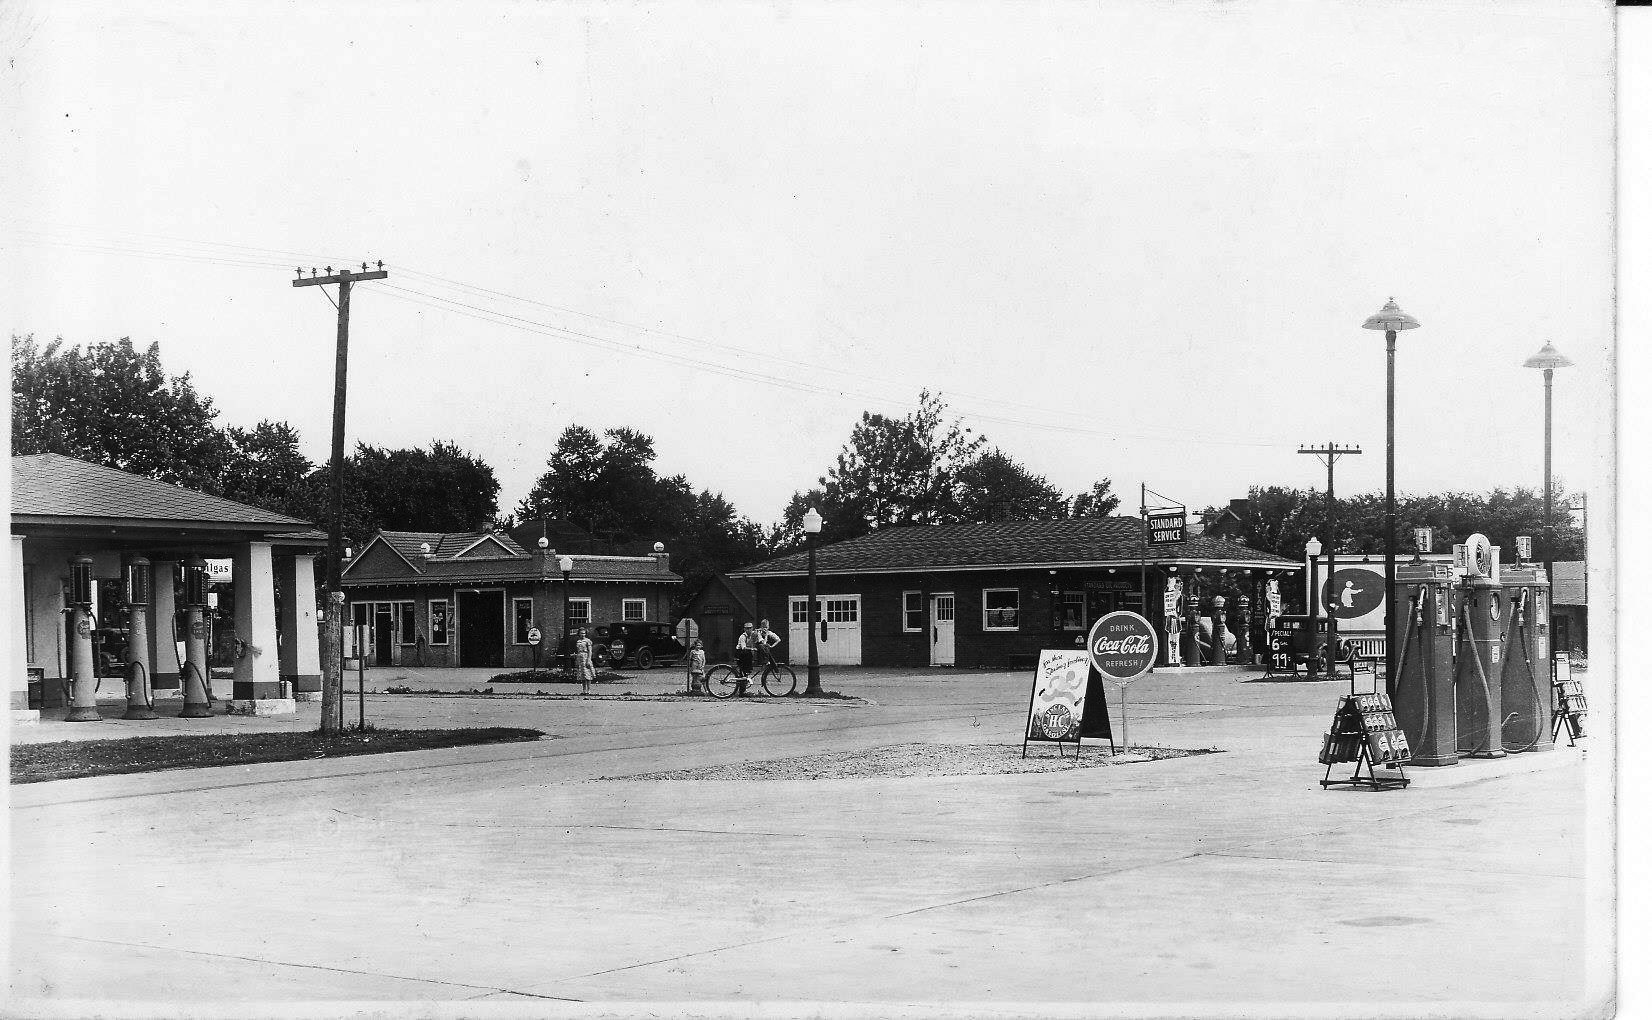 Pictured above is the intersection of Route 32 and State Street in Lovington in the 1930s. The brick Standard Station on the right is where the fire department is now. Many thanks to Vicki Binder for sharing this rare photo.. Please submit photos to the News Progress for future consideration. Originals will be saved for return or forwarded to Moultrie County Historical Society. If you have any other information, please contact the Moultrie County Historical Society at 217-728- 4085.